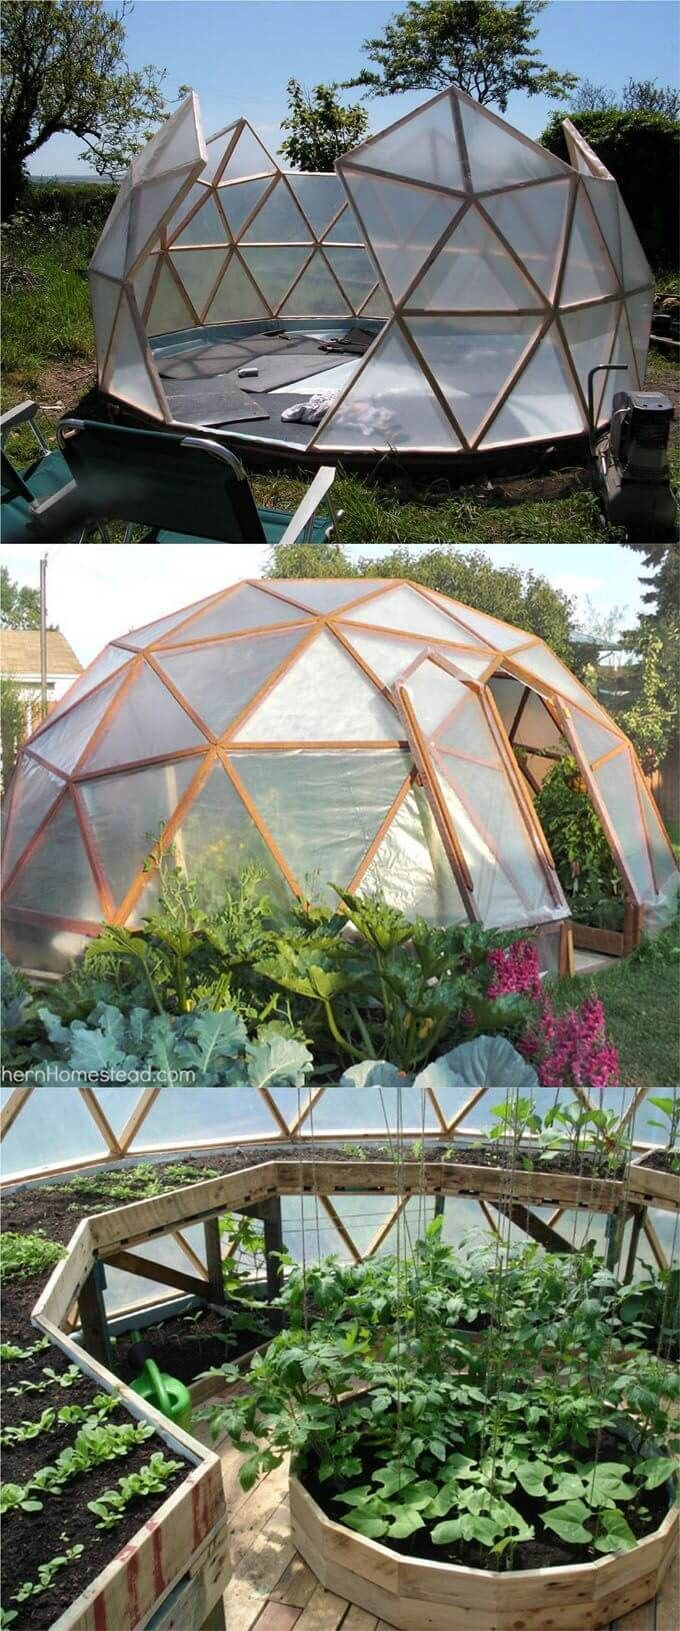 25 amazing DIY Green House ideas that are easy to create